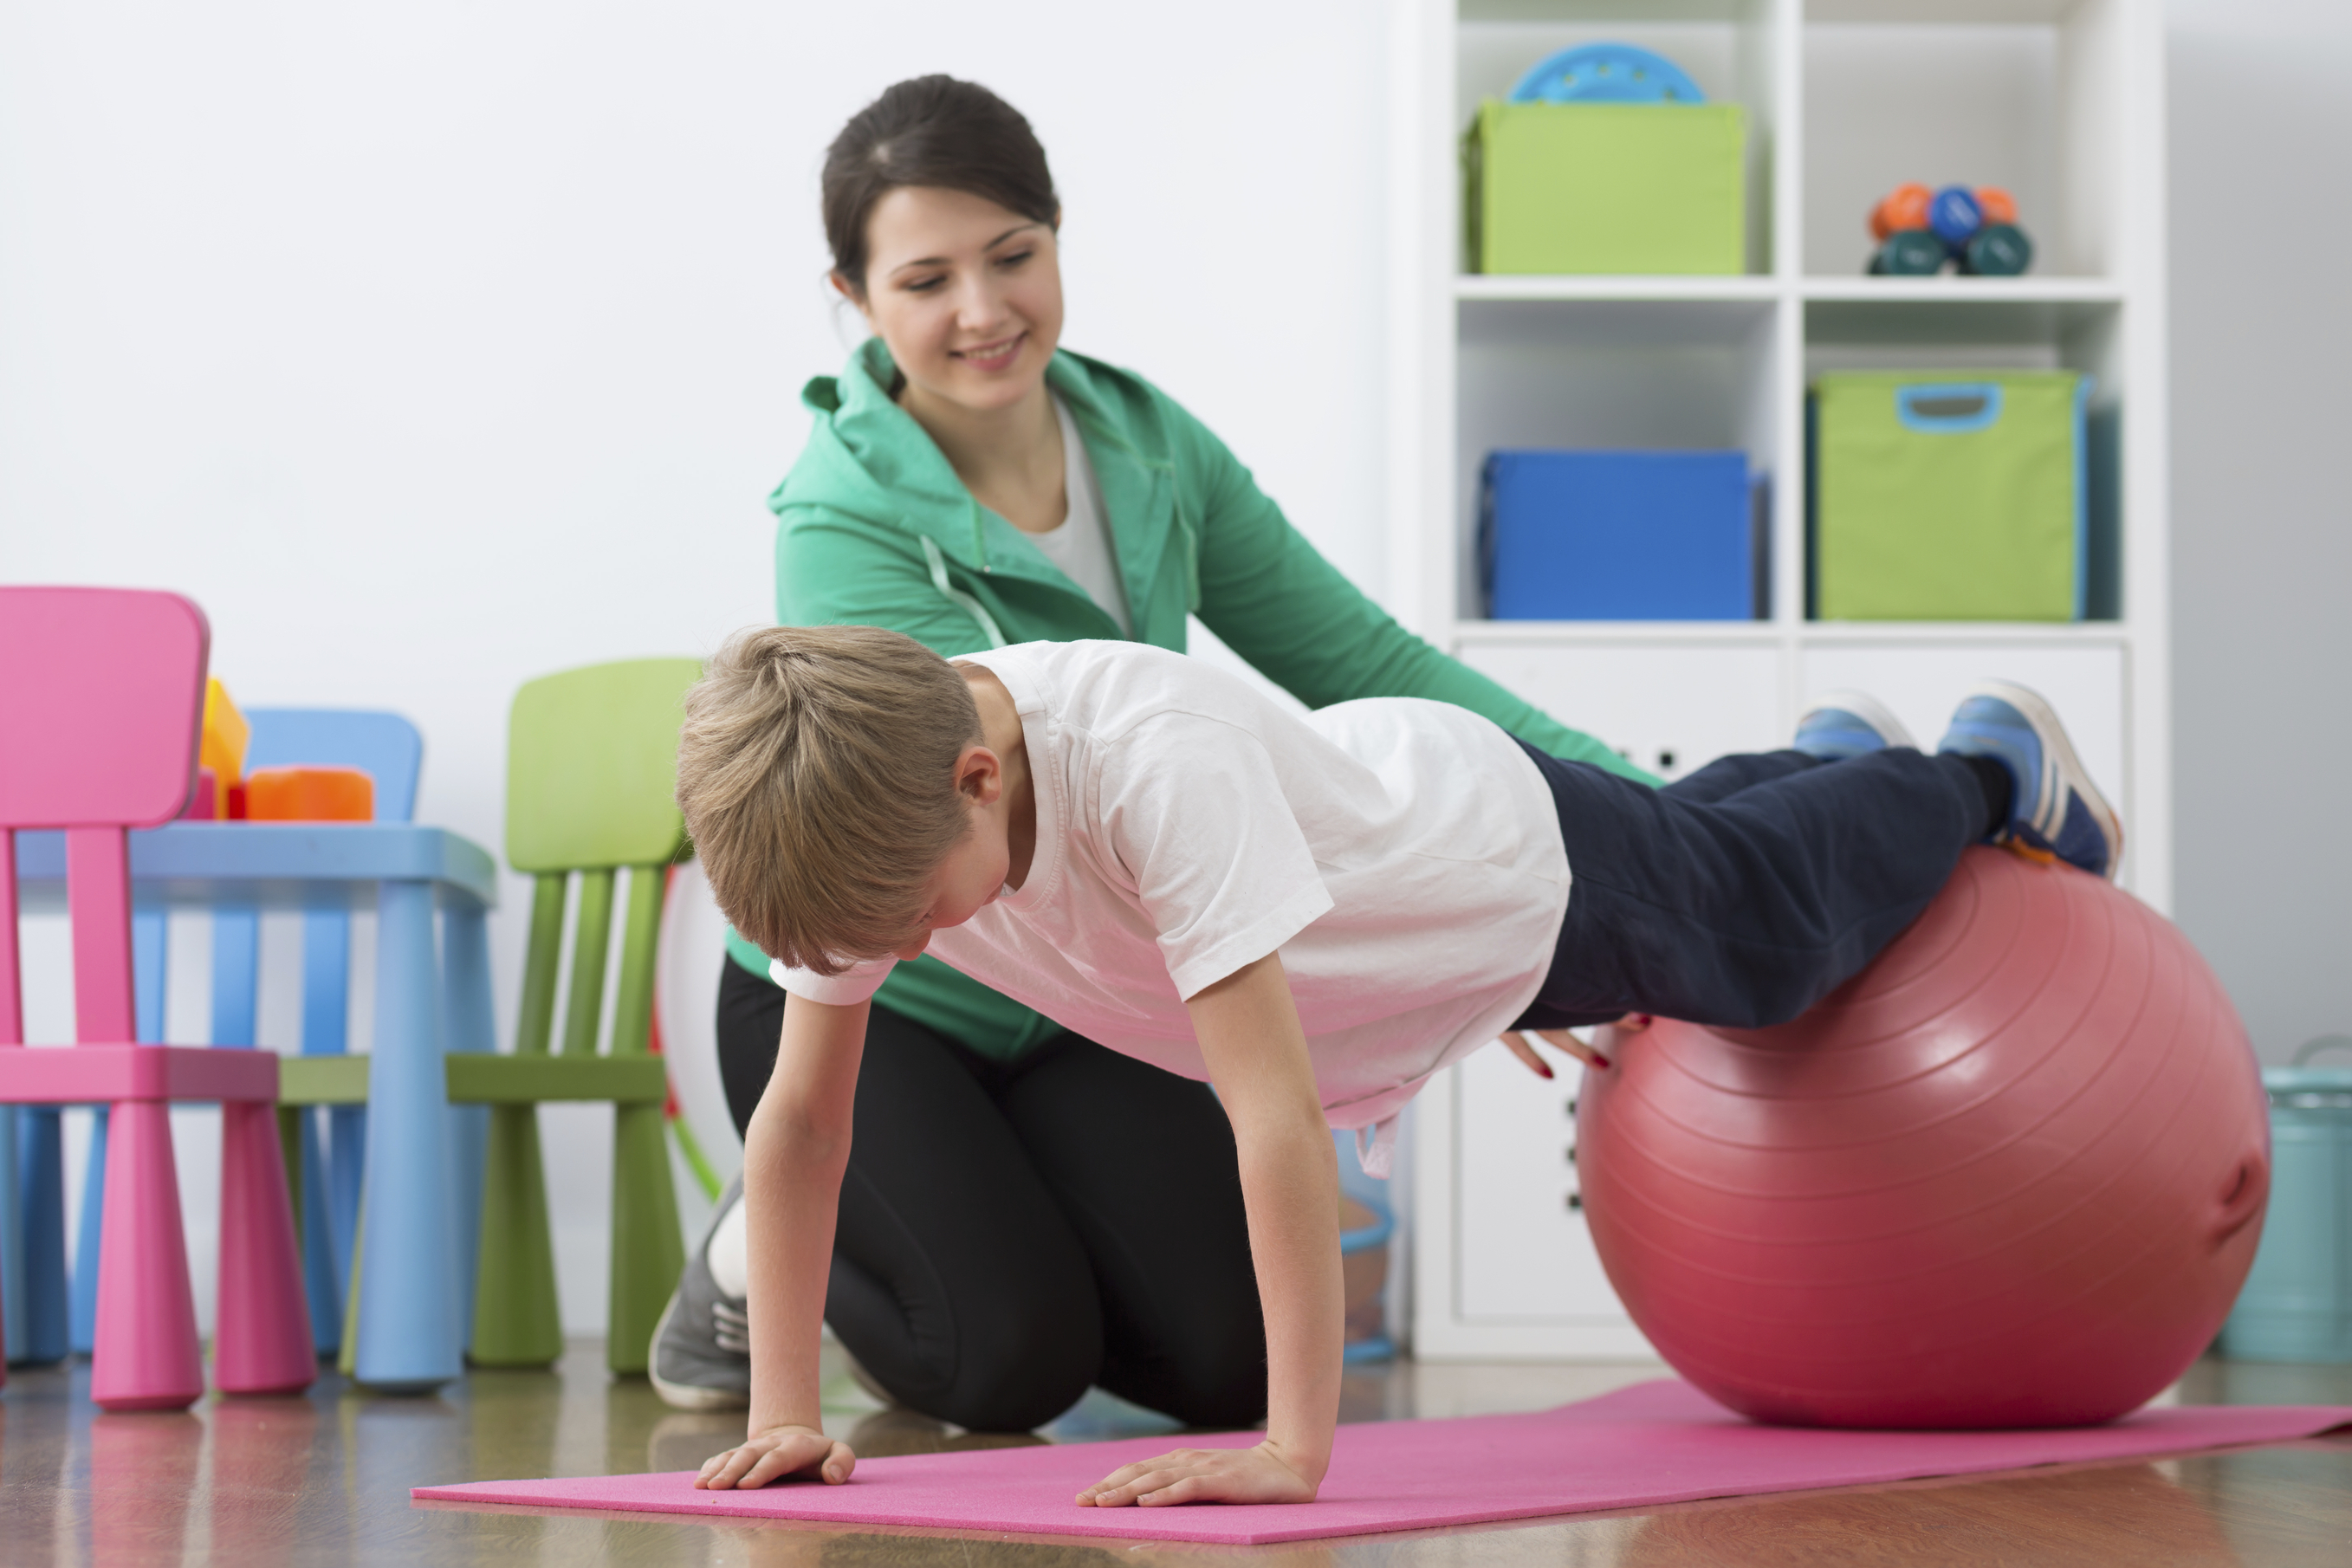 Upper Back Pain Can Restrict an Individual Daily Activities